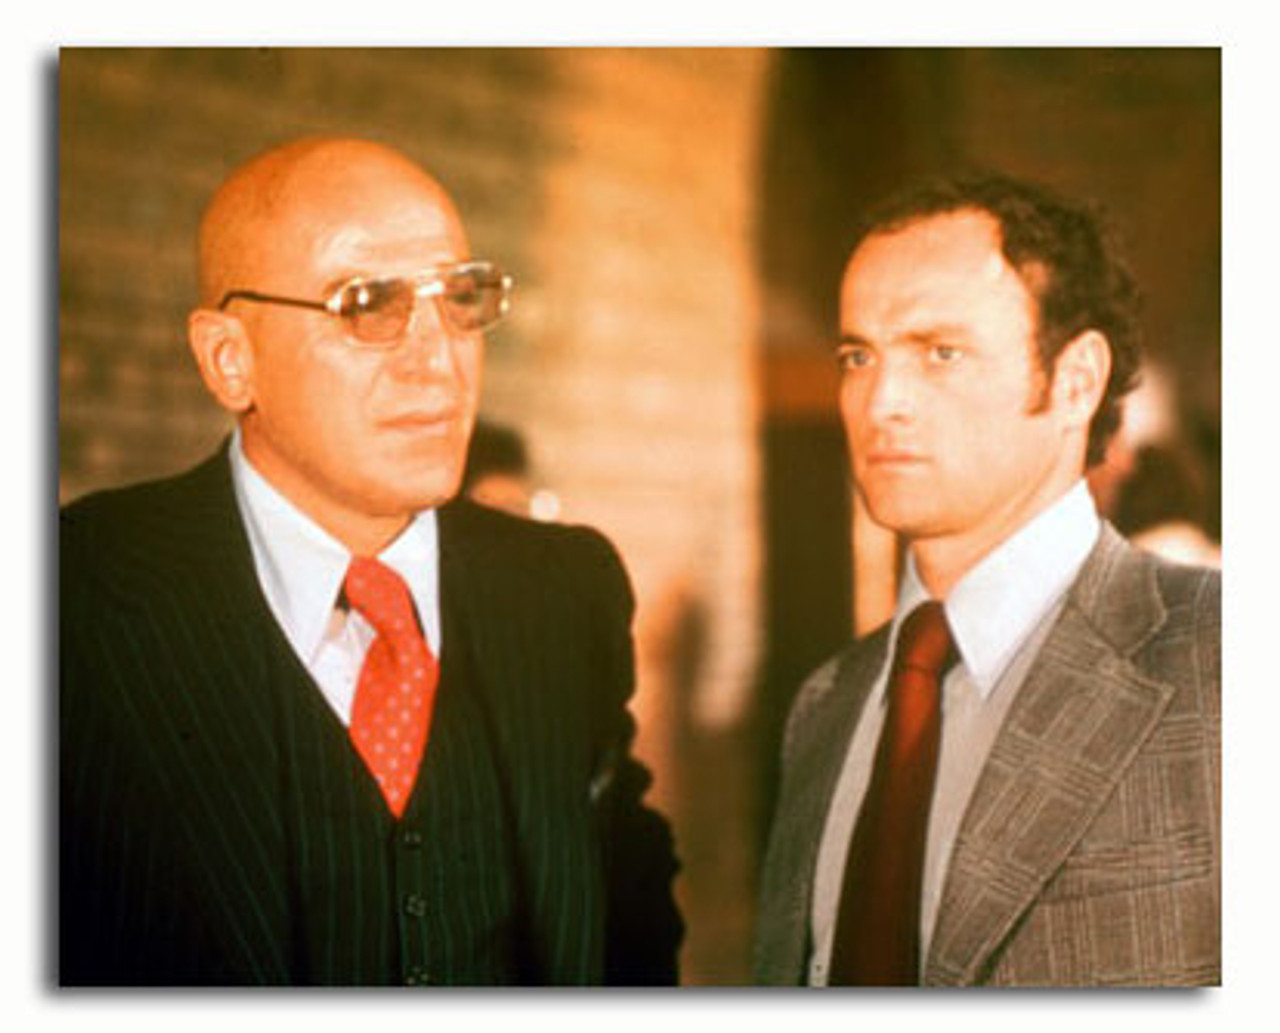 "Série ""Kojak"" - Page 23 Ss3463408_-_photograph_of_kevin_dobson_as_det_bobby_crocker__telly_savalas_as_lt_theo_kojak__from_kojak_available_in_4_sizes_framed_or_unframed_buy_now_at_starstills__96189.1394501242"